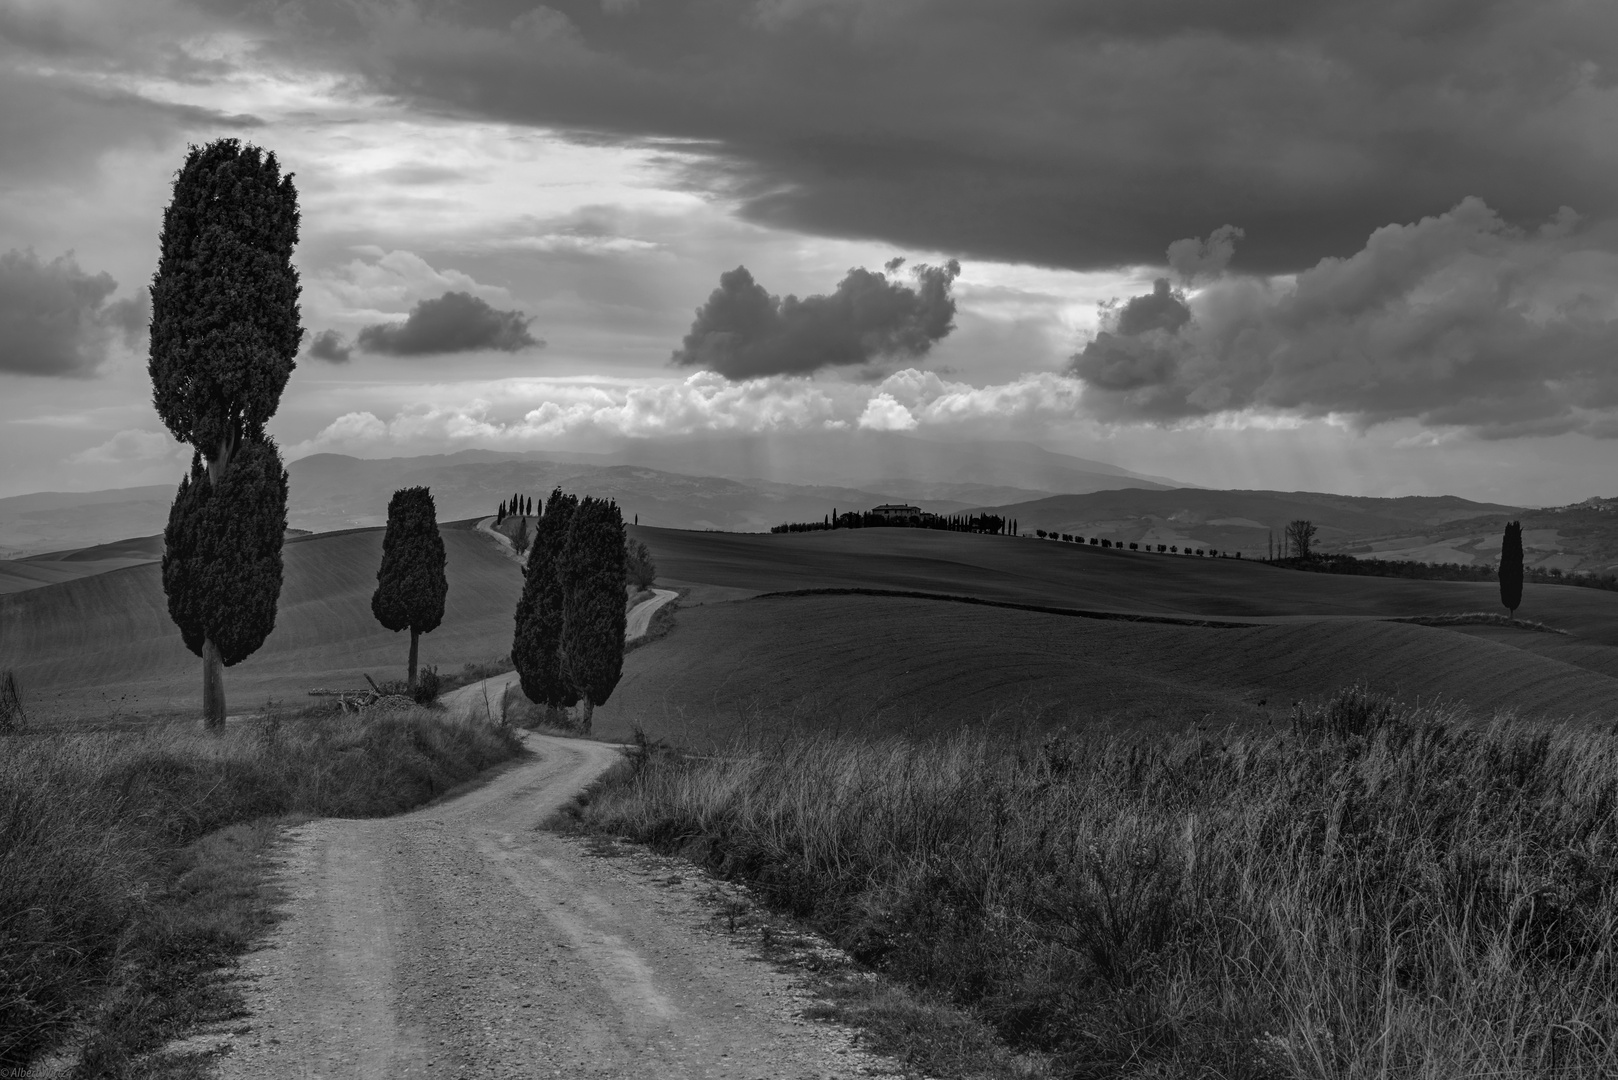 *Val d'Orcia @ die Illusion immer guten Wetters...*